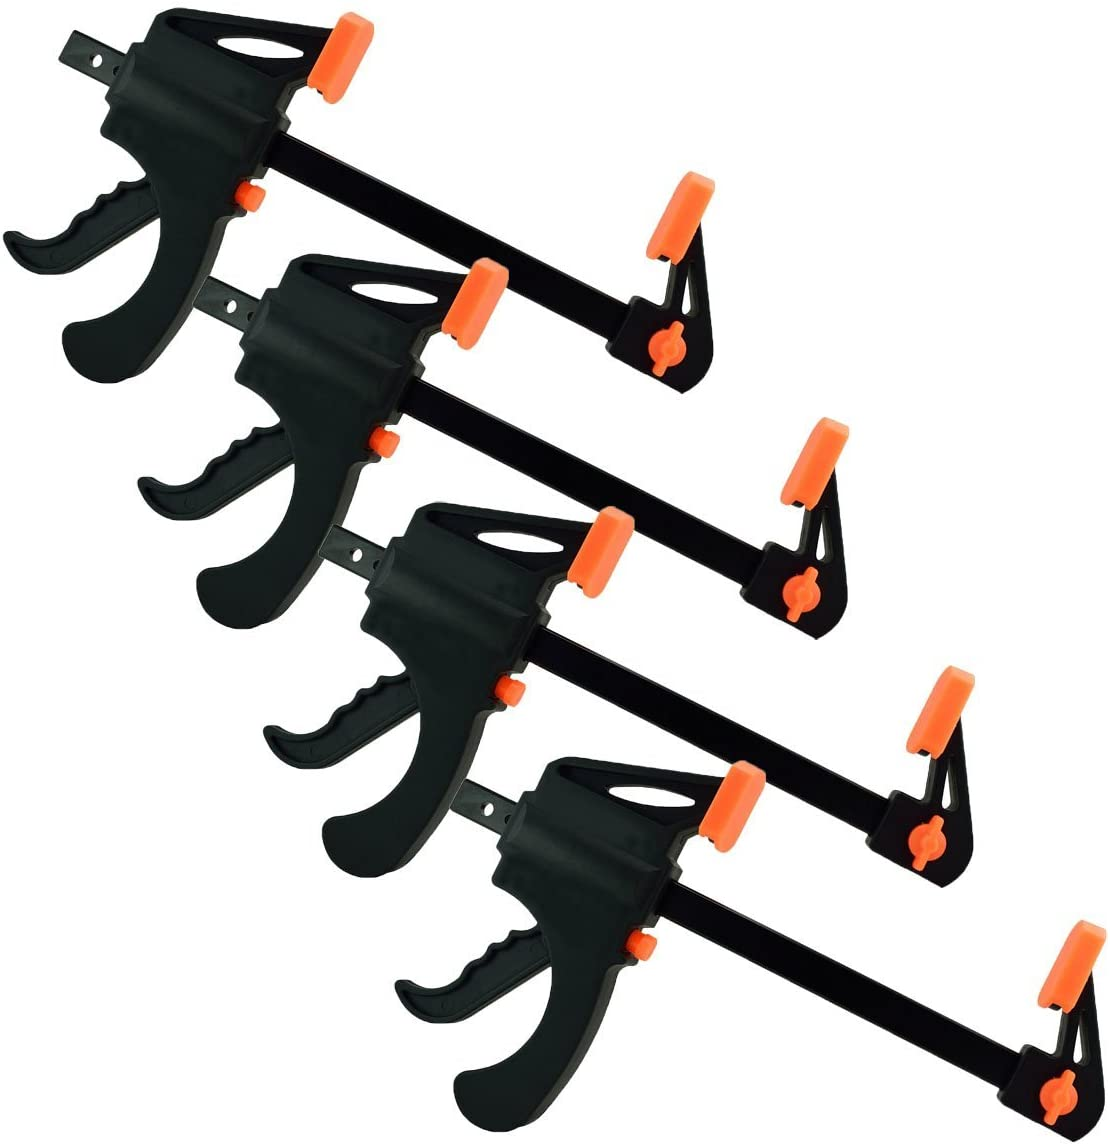 Black Duck Brand Ratchet Bar 6 Clamp Converts to 12 Spreader 2 Pack Ratchet Bar Clamps